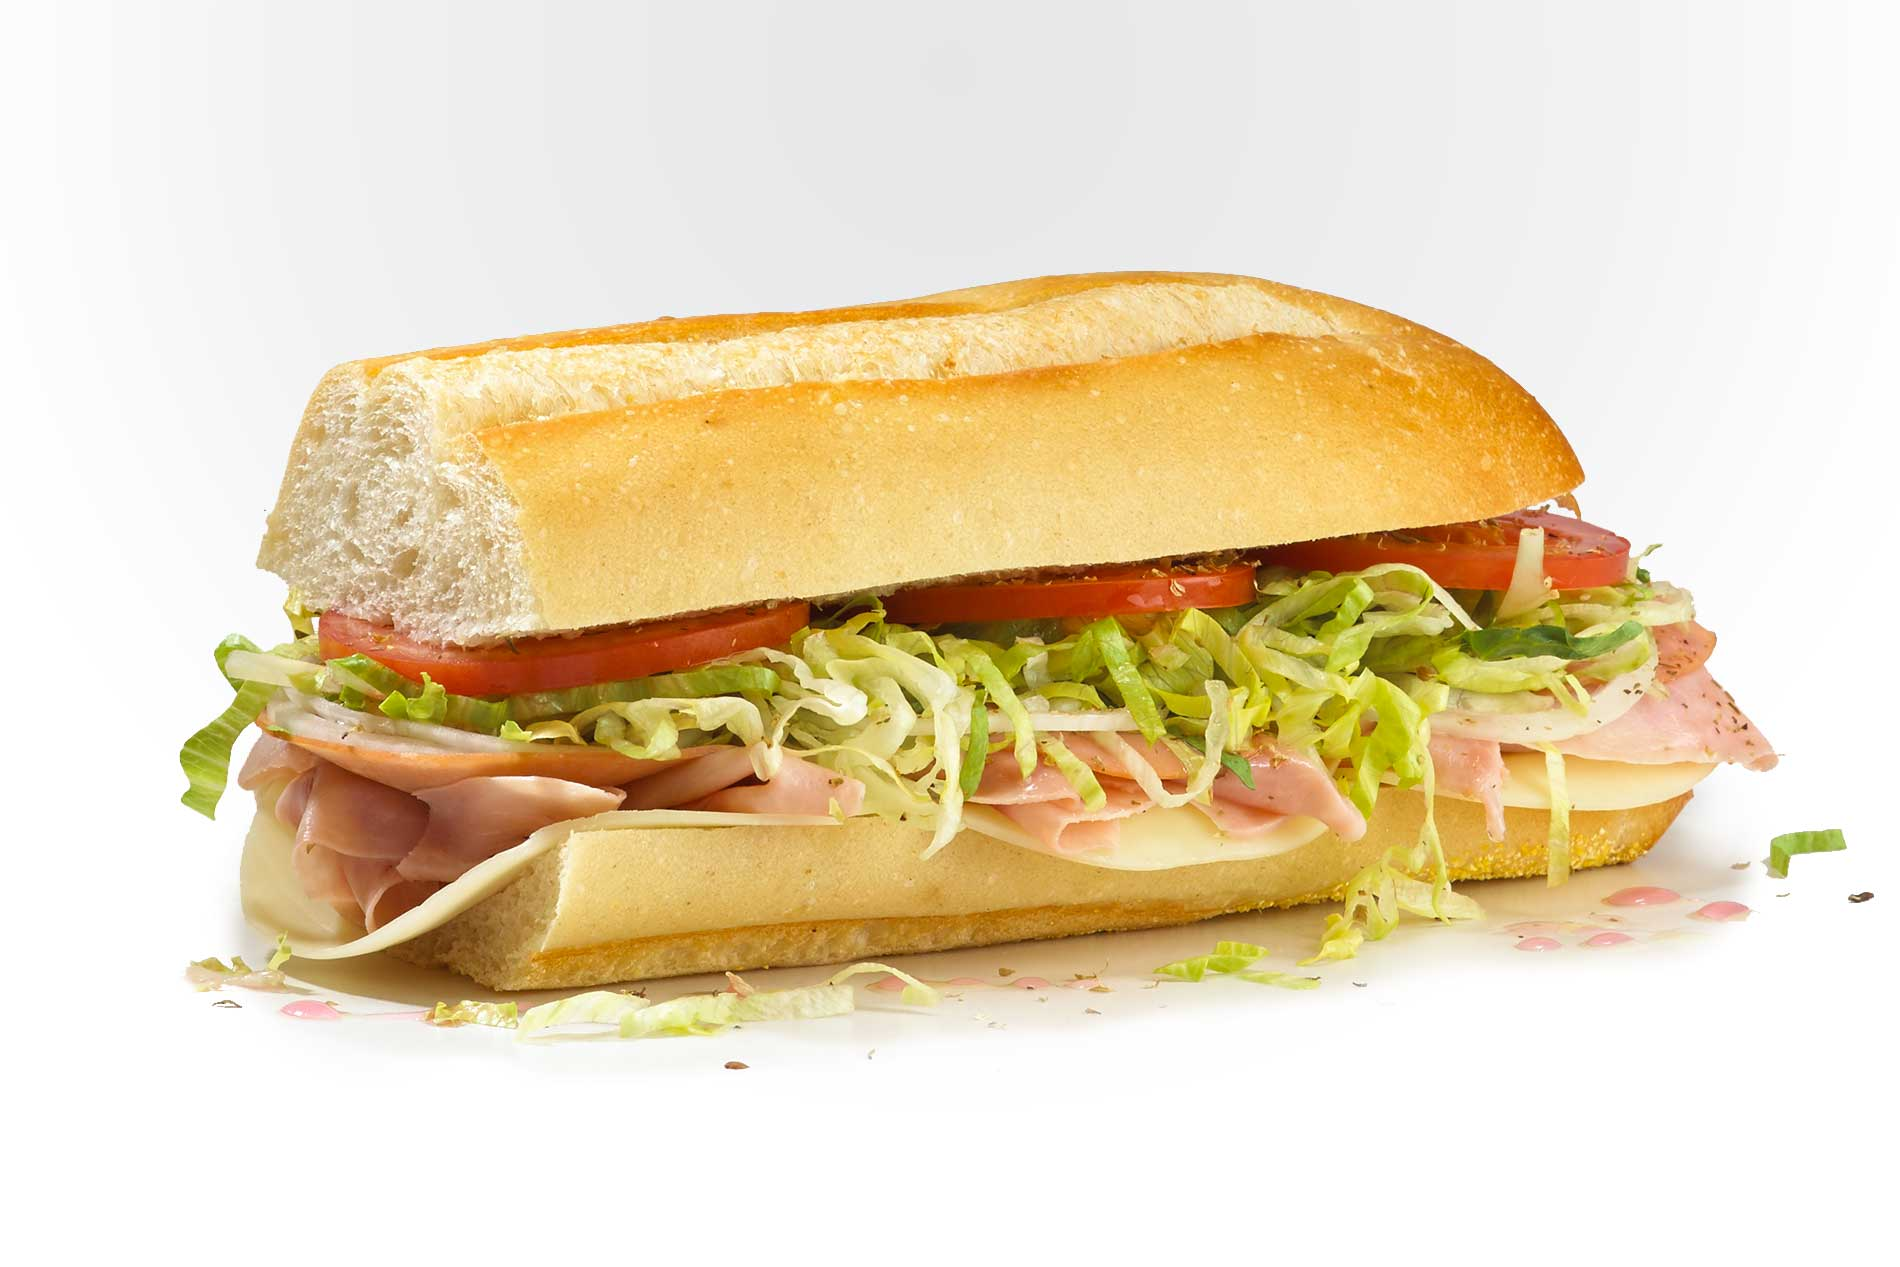 #2 Jersey Shore's Favorite - Cold Subs